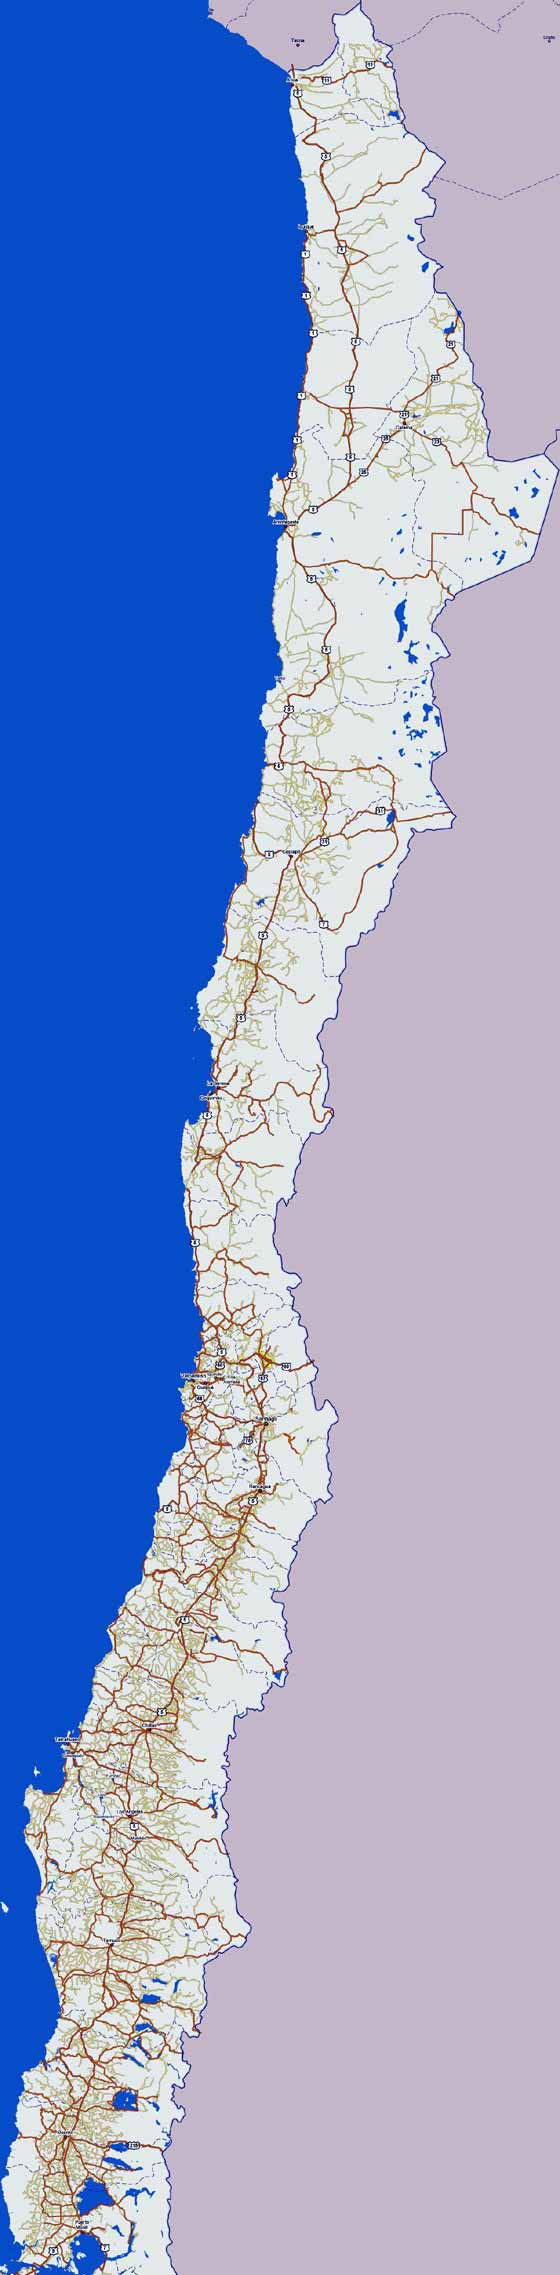 Large map of Chile